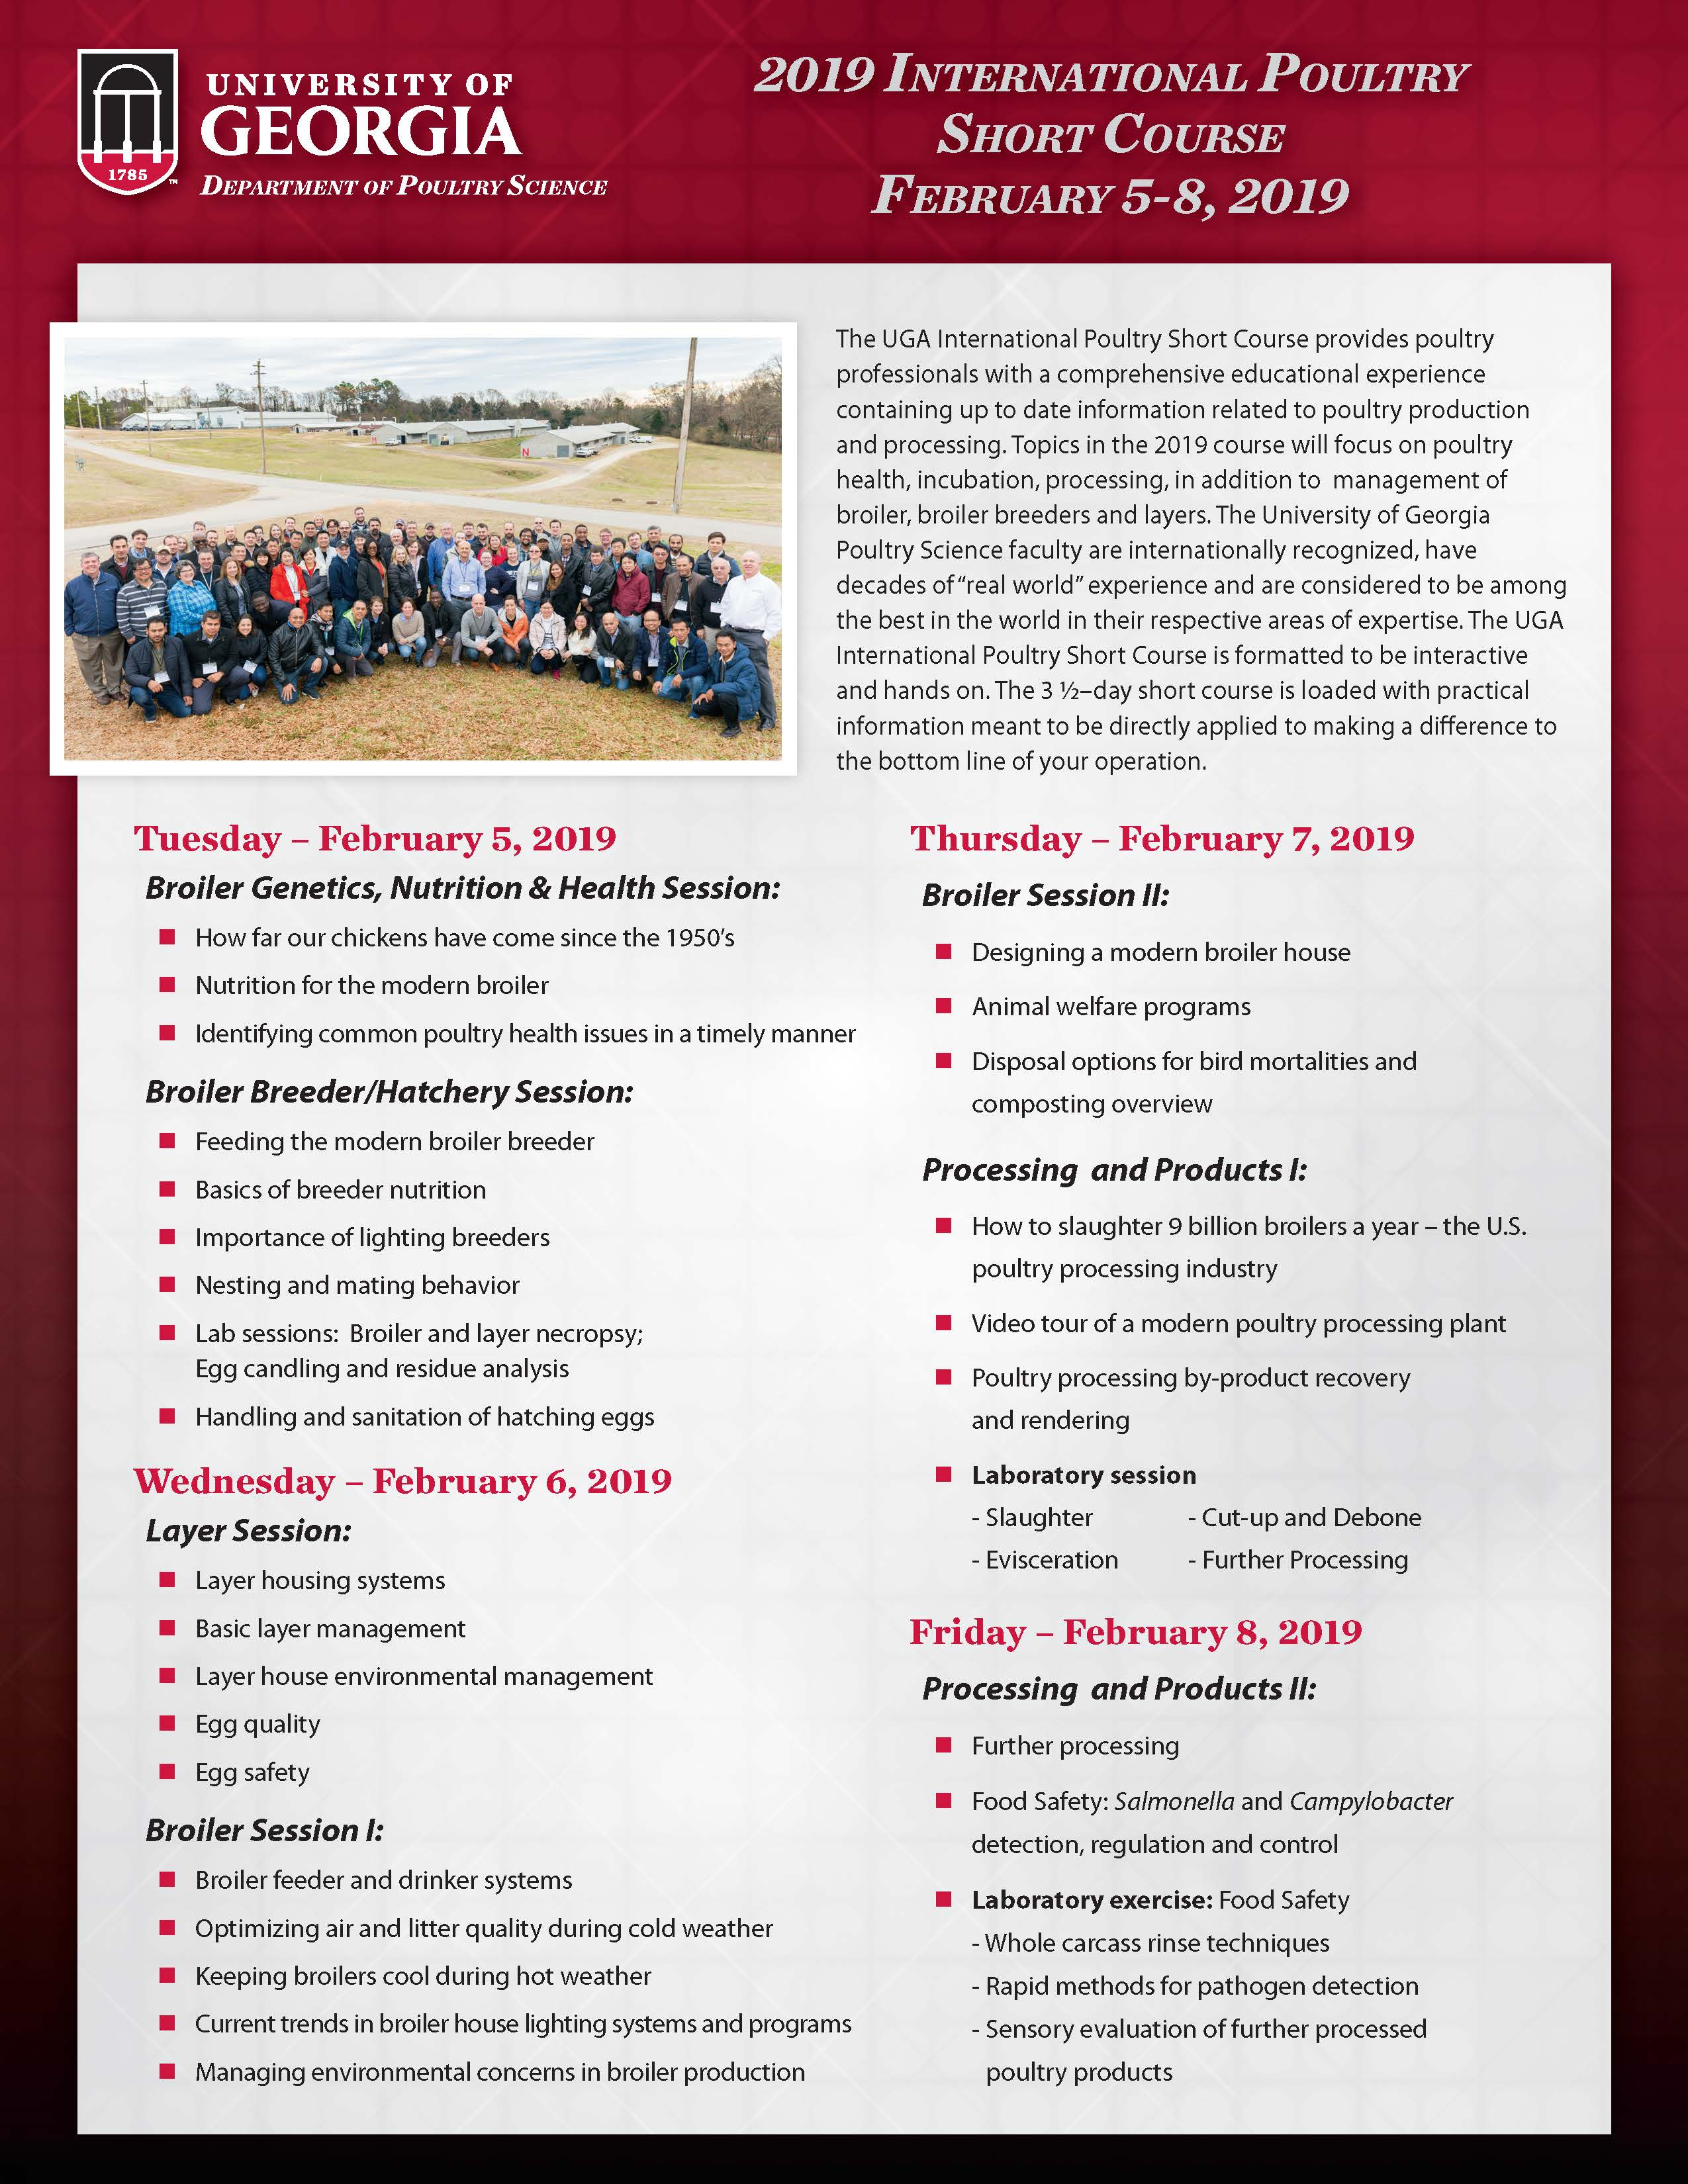 2019 UGA International Poultry Short Course